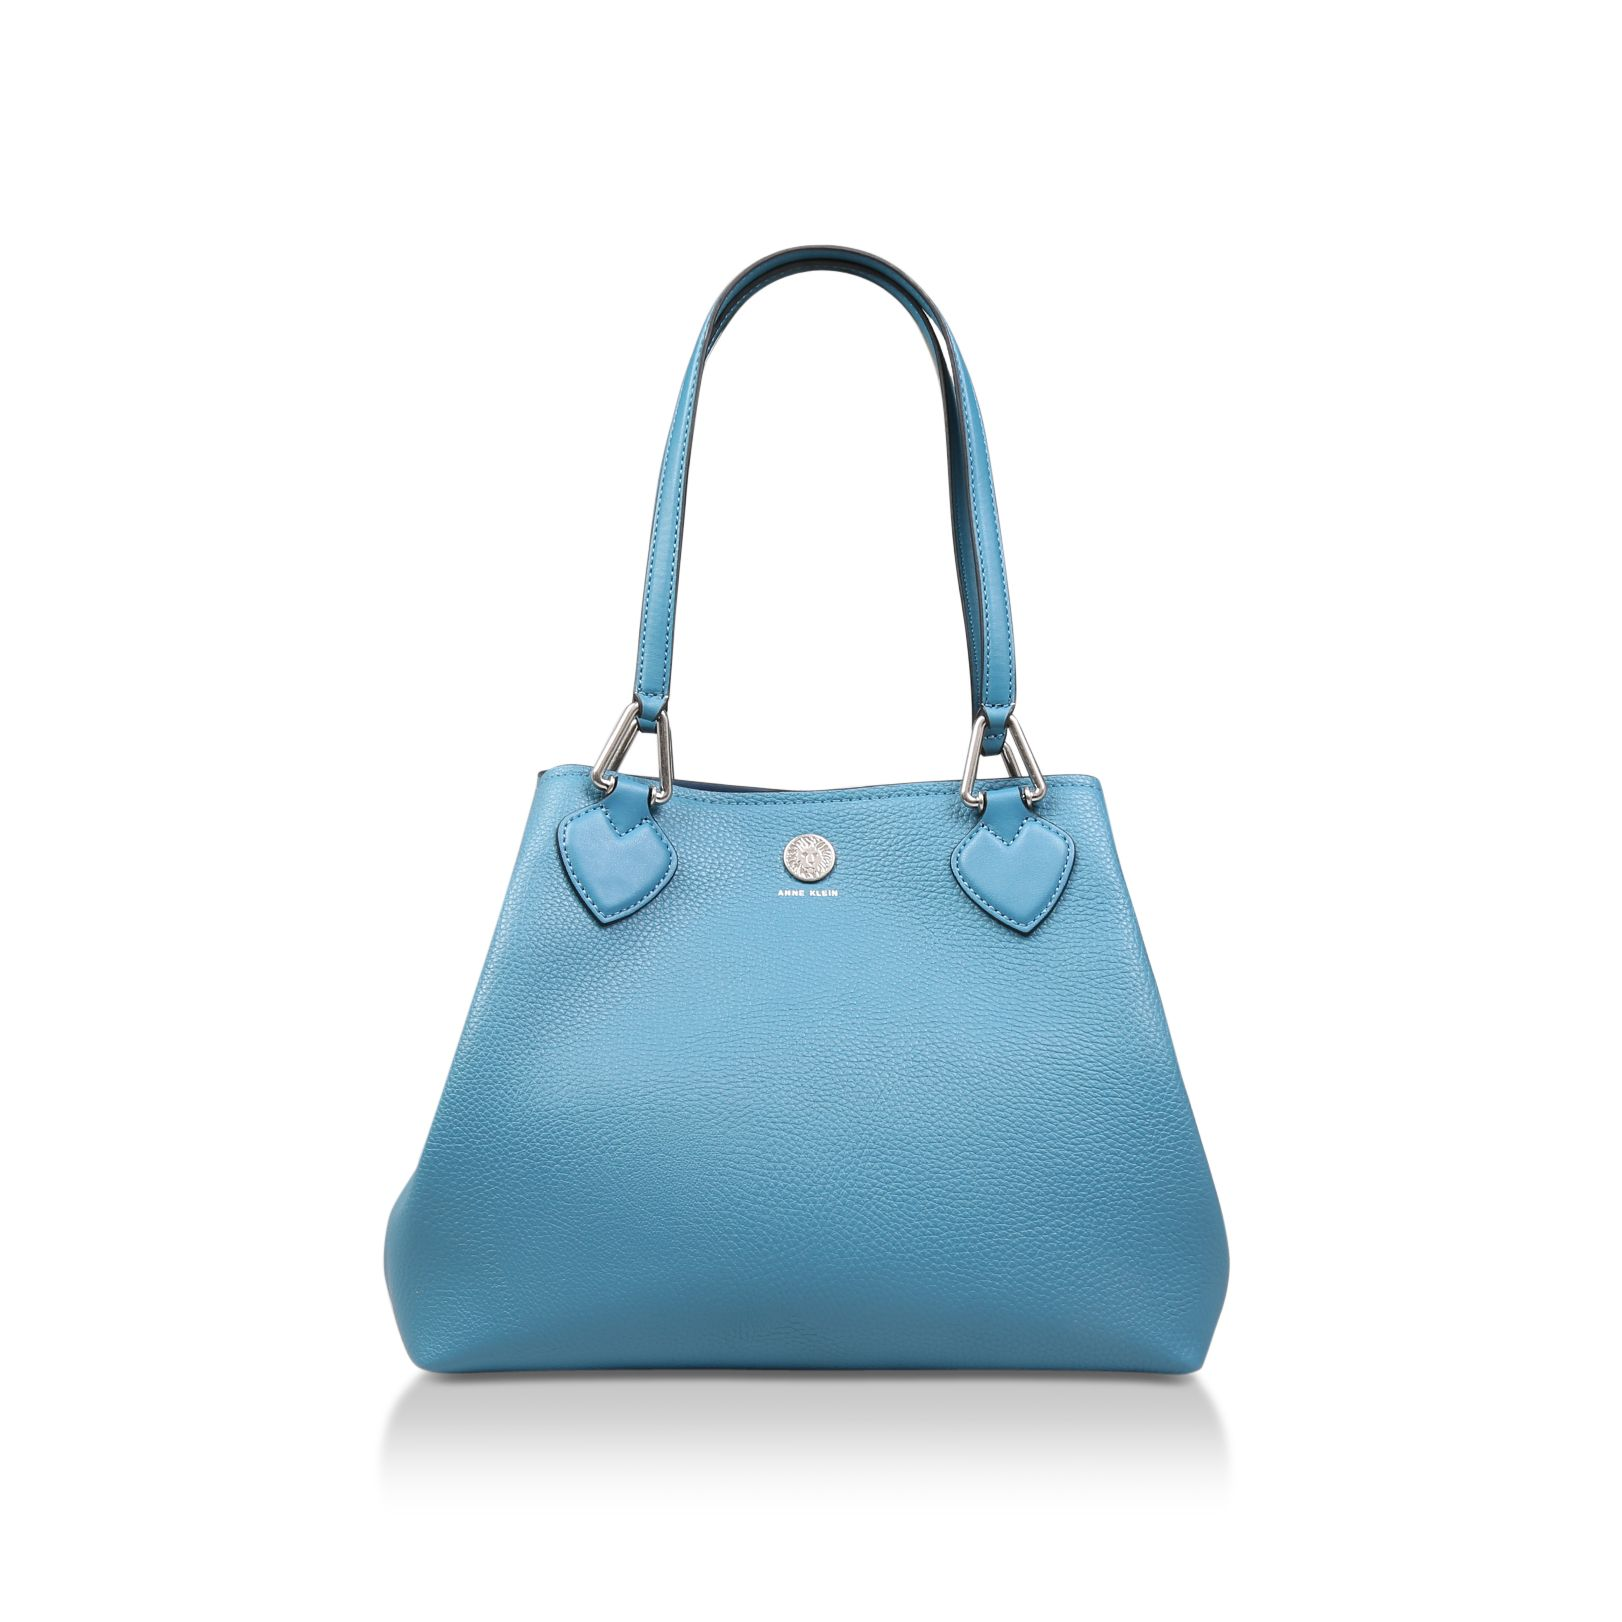 Anne Klein Hinge Tote Bag, Blue